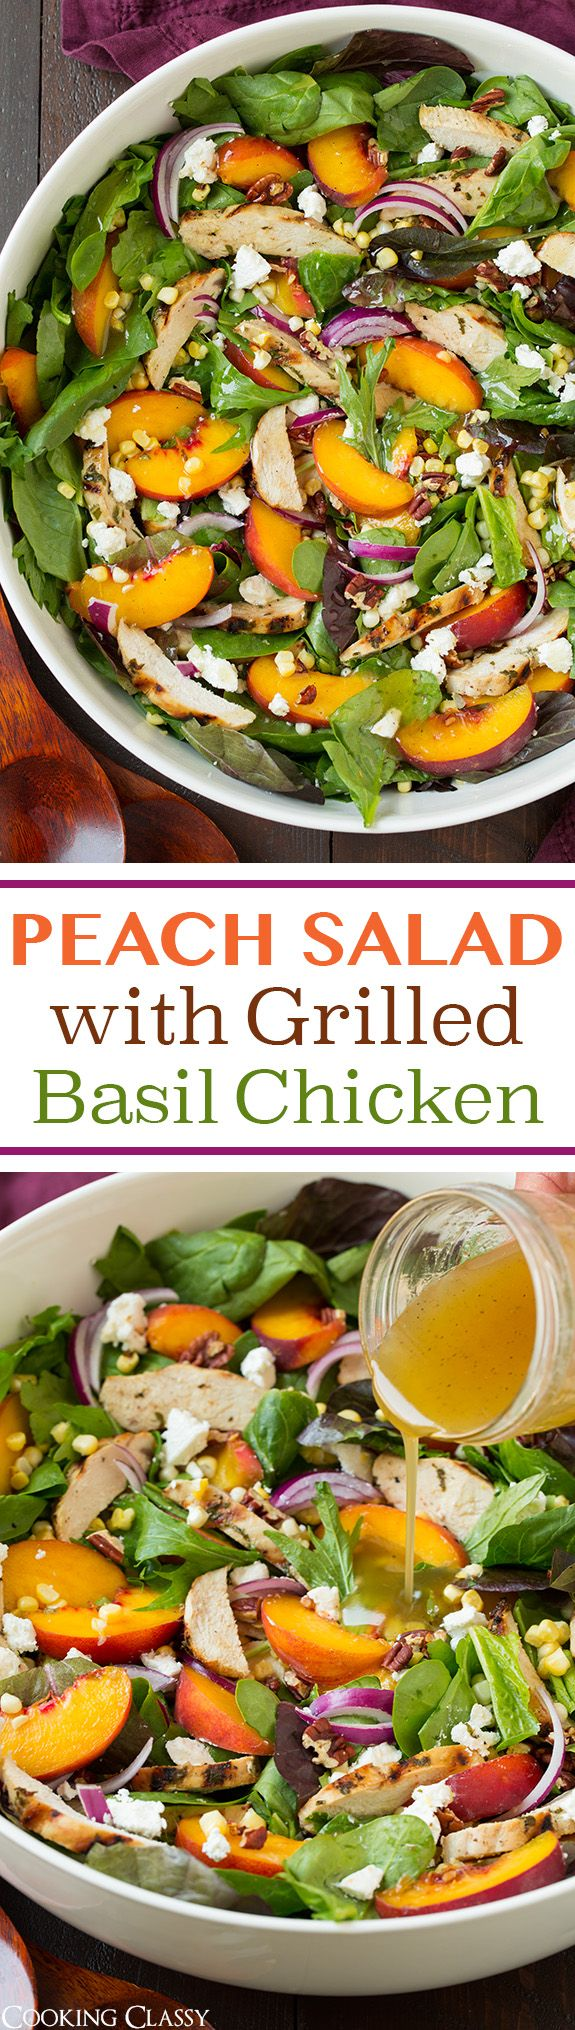 Peach Salad with Grilled Basil Chicken and White Balsamic-Honey Vinaigrette - this salad is INCREDIBLE!! One of my favorite summer salads! Spring greens, garlic-basil marinated chicken, peaches, corn, goat cheese, pecans, red onion and a white balsamic dressing.